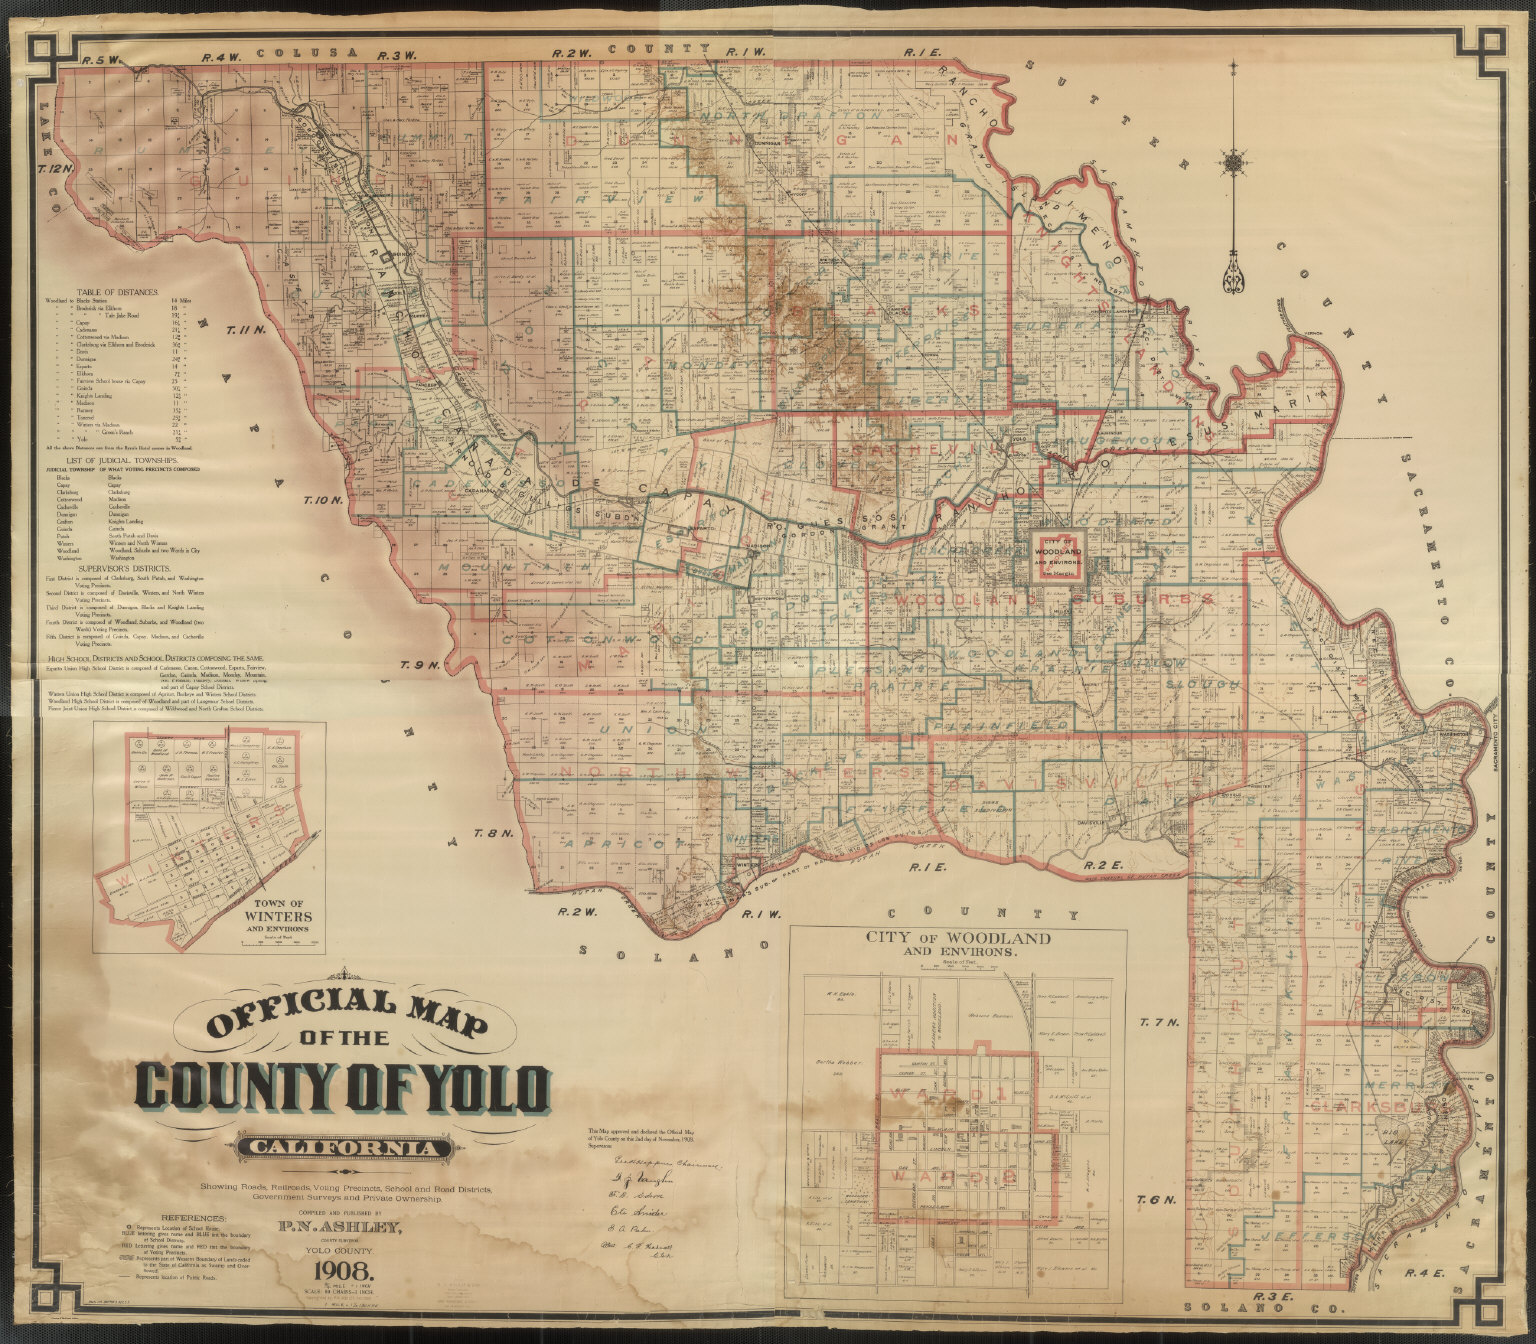 Official Map Of Yolo County California 1909 David Rumsey